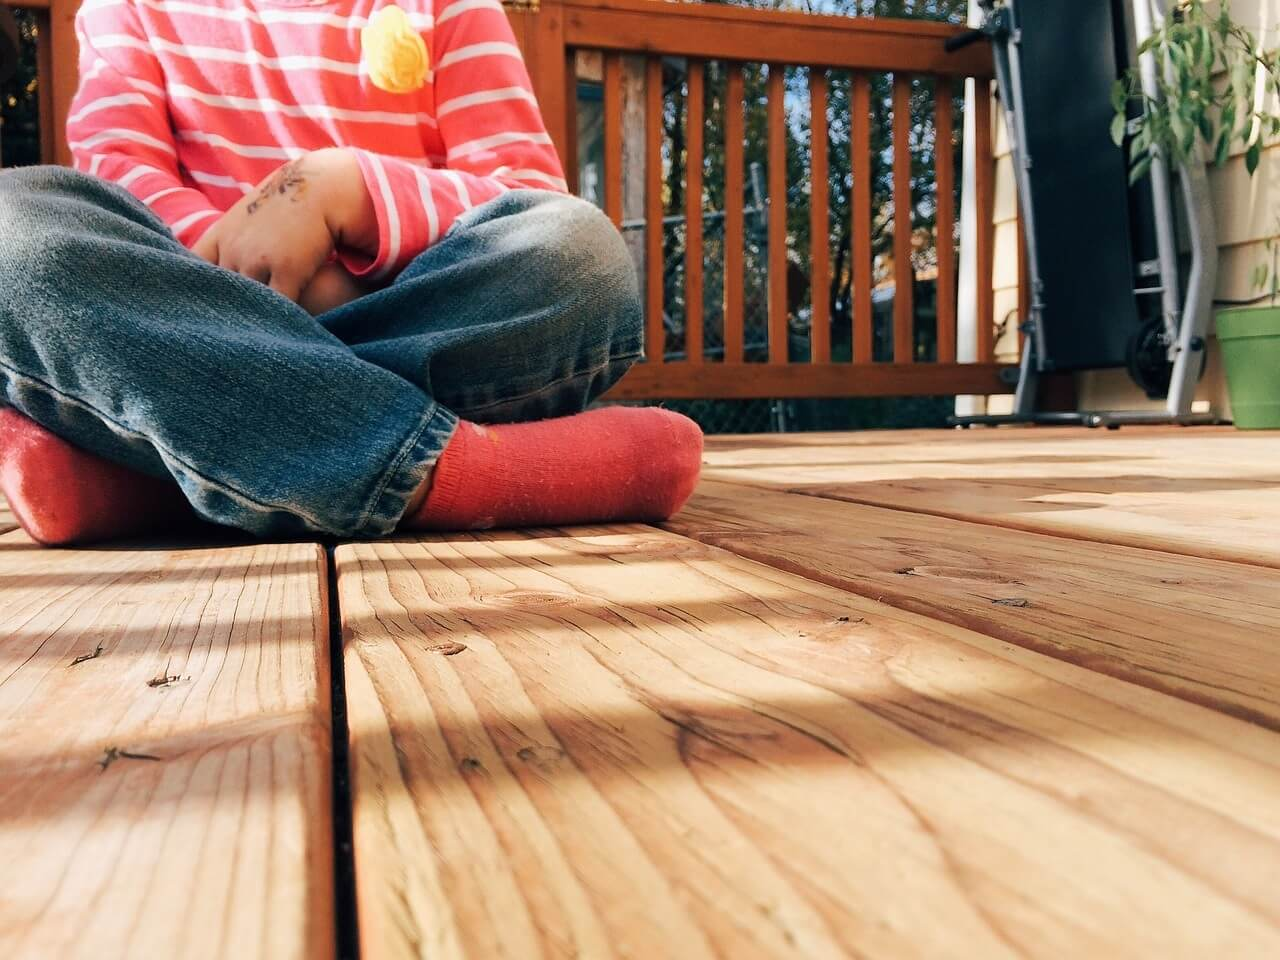 Person sitting on a deck